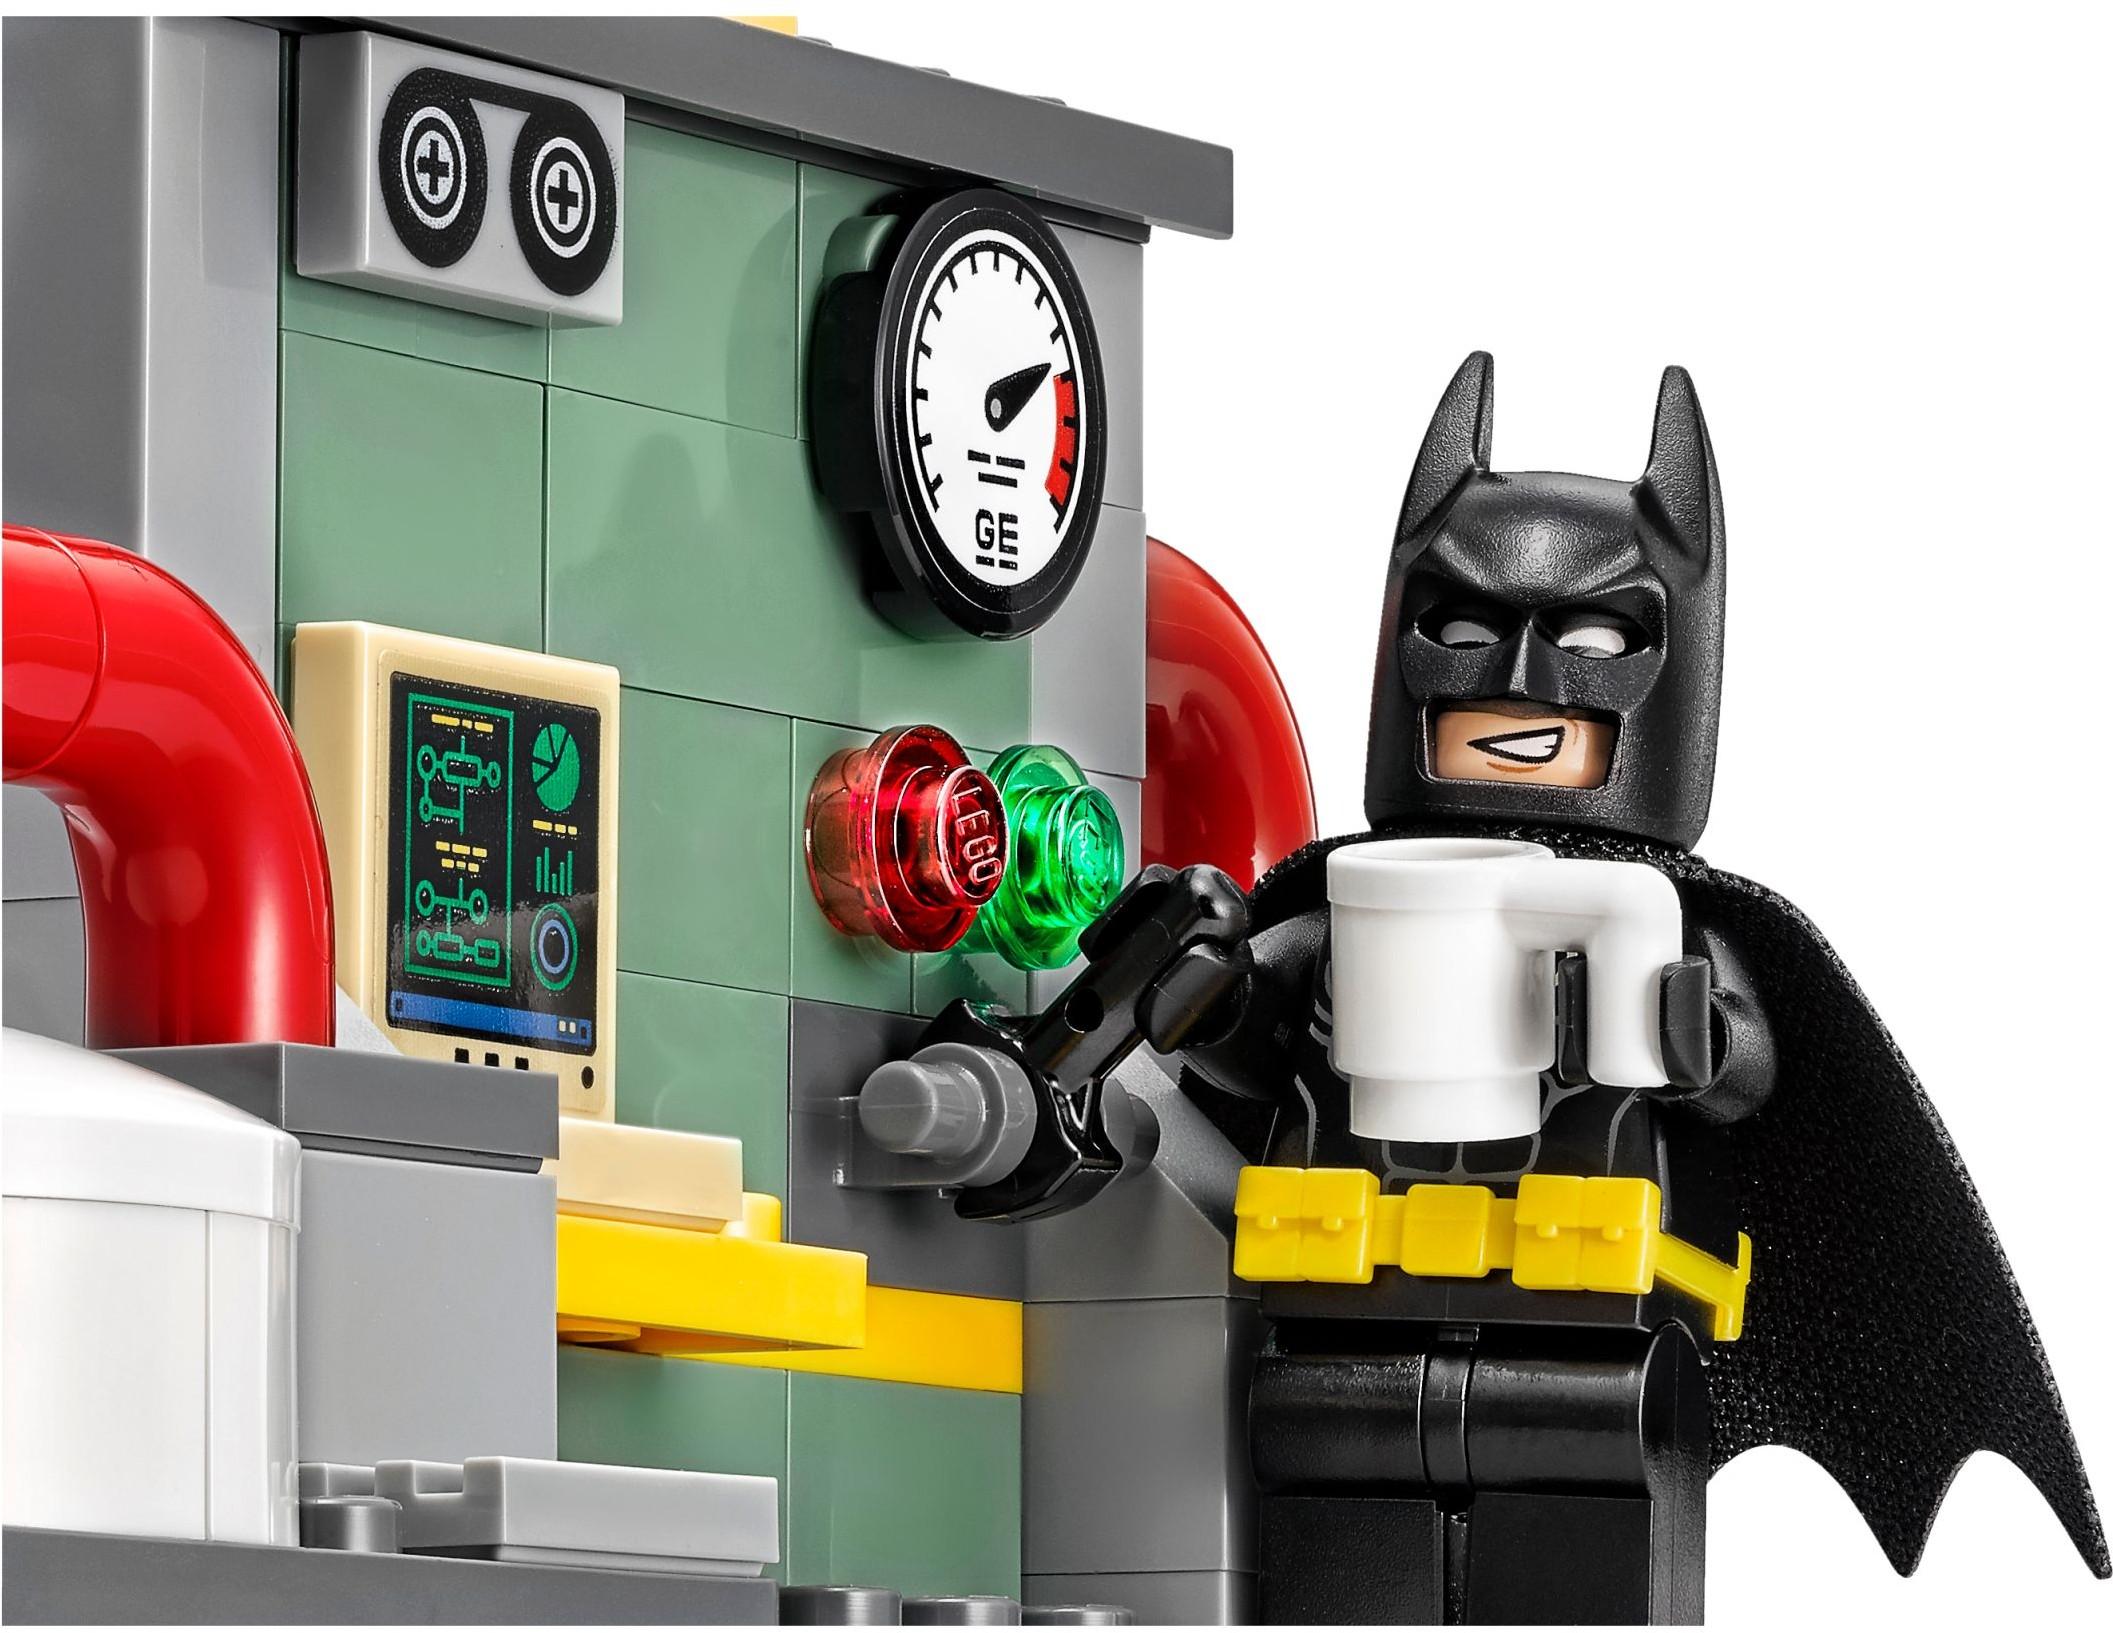 https://i1.wp.com/images.brickset.com/sets/AdditionalImages/70901-1/70901_alt7.jpg